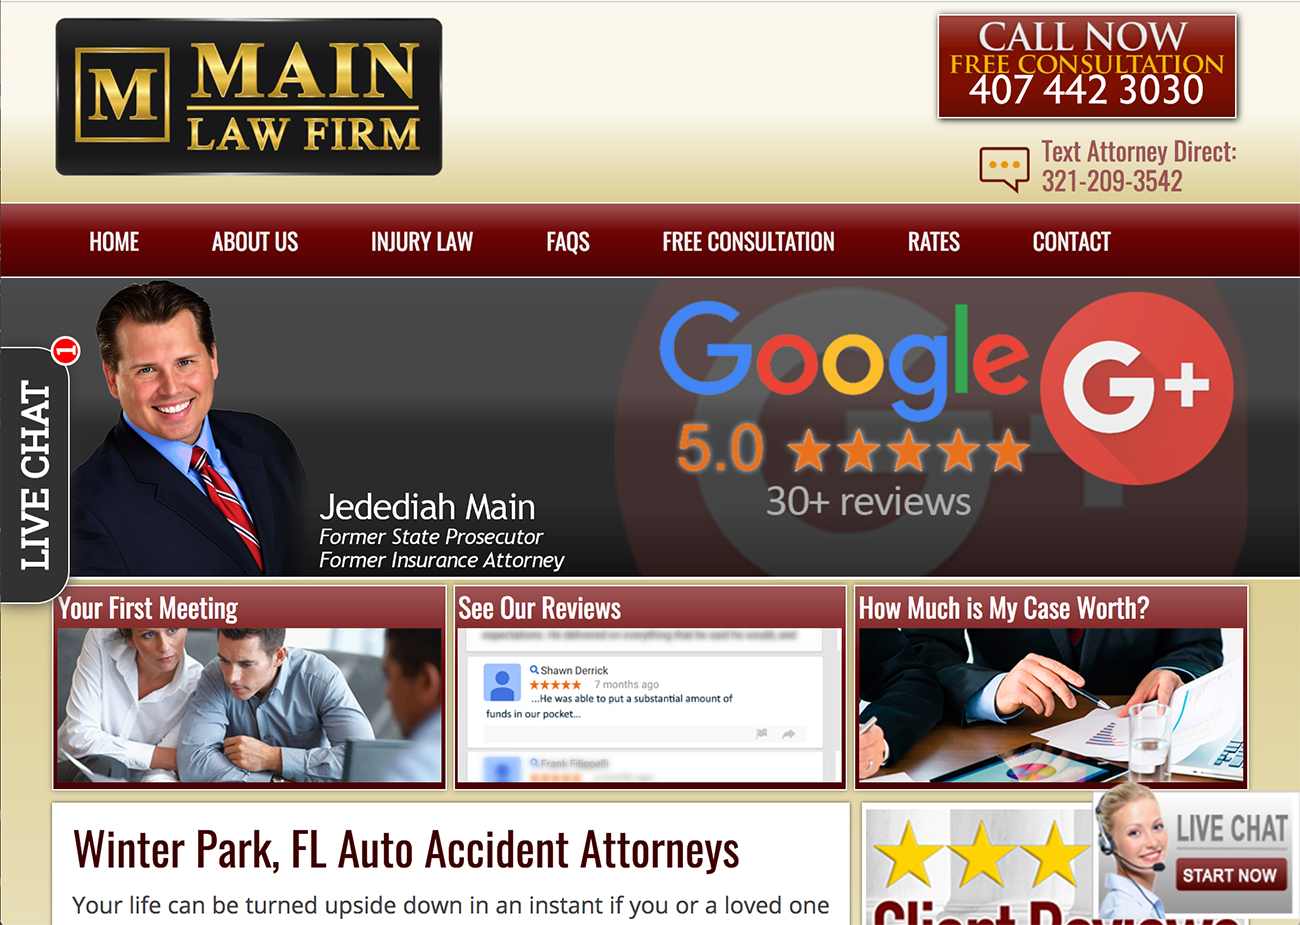 Main Law Firm Winter Park, FL Injury Lawyers